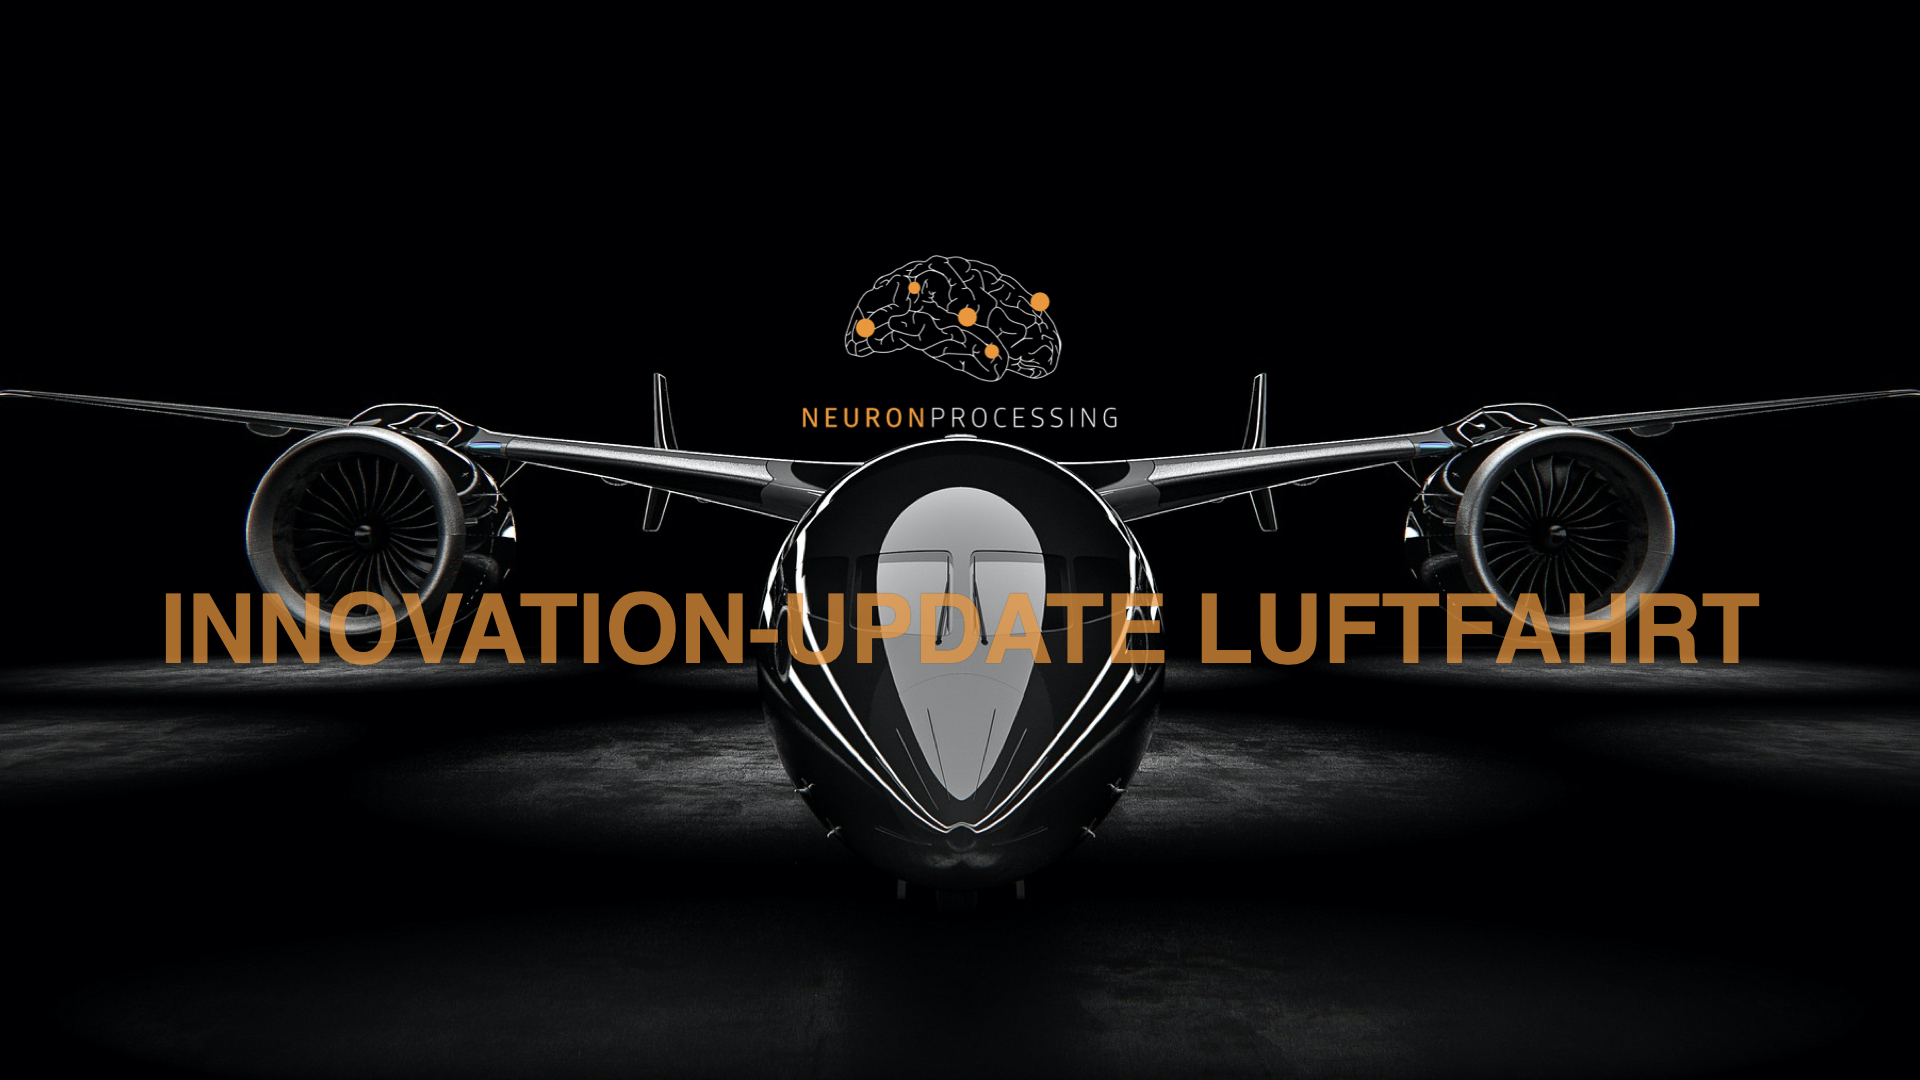 NEURONprocessing Innovation-Update Luftfahrt